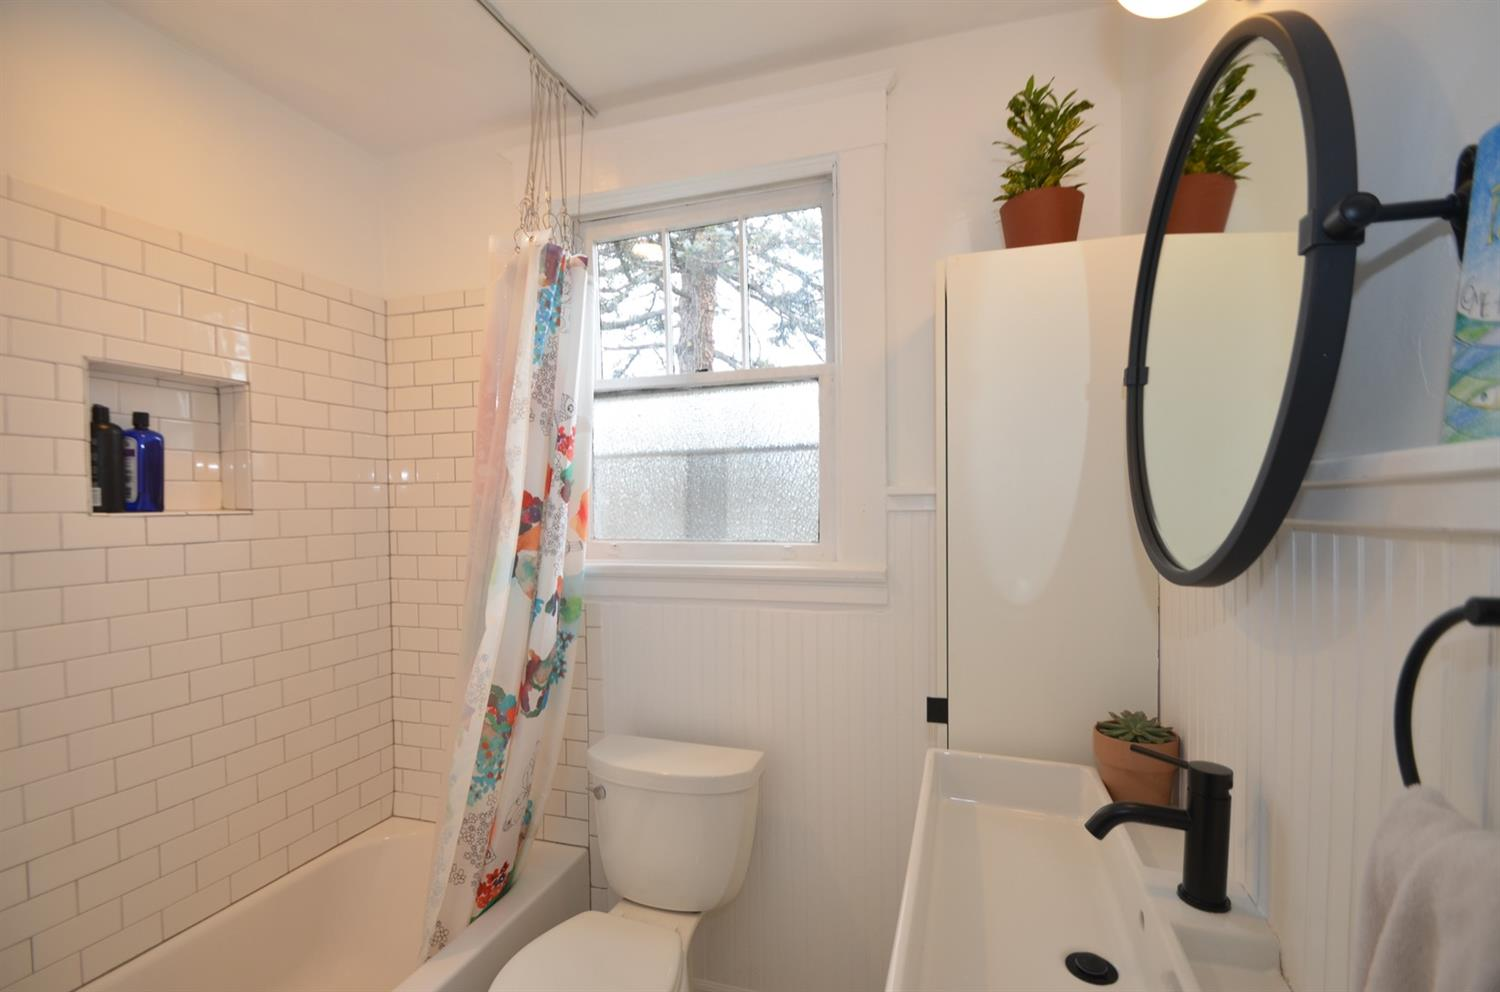 Second floor master bath is nicely updated.